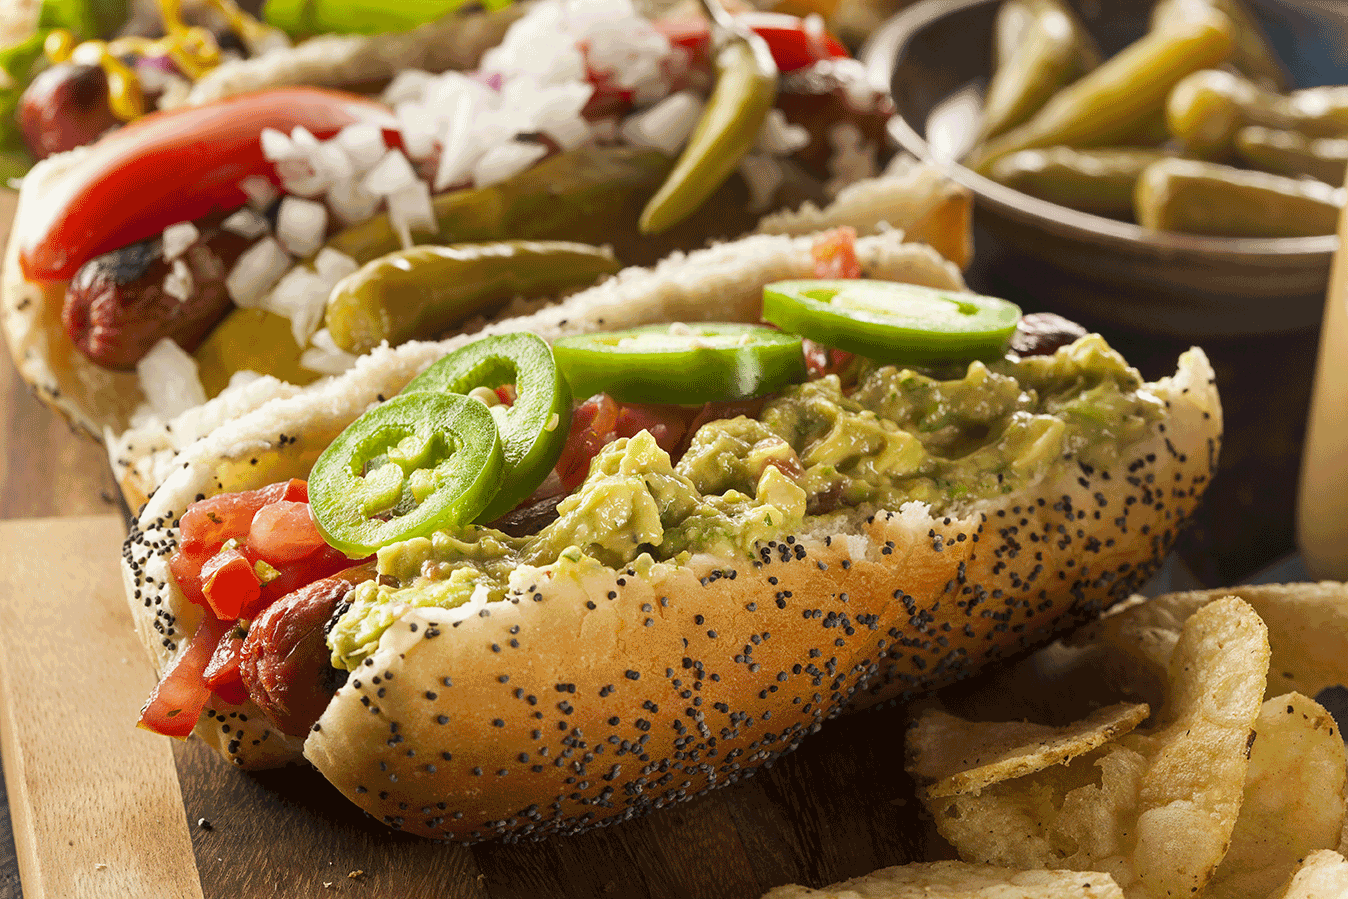 Spicy Mexican Hot Dog Recipe via @mermaidsandmojitos